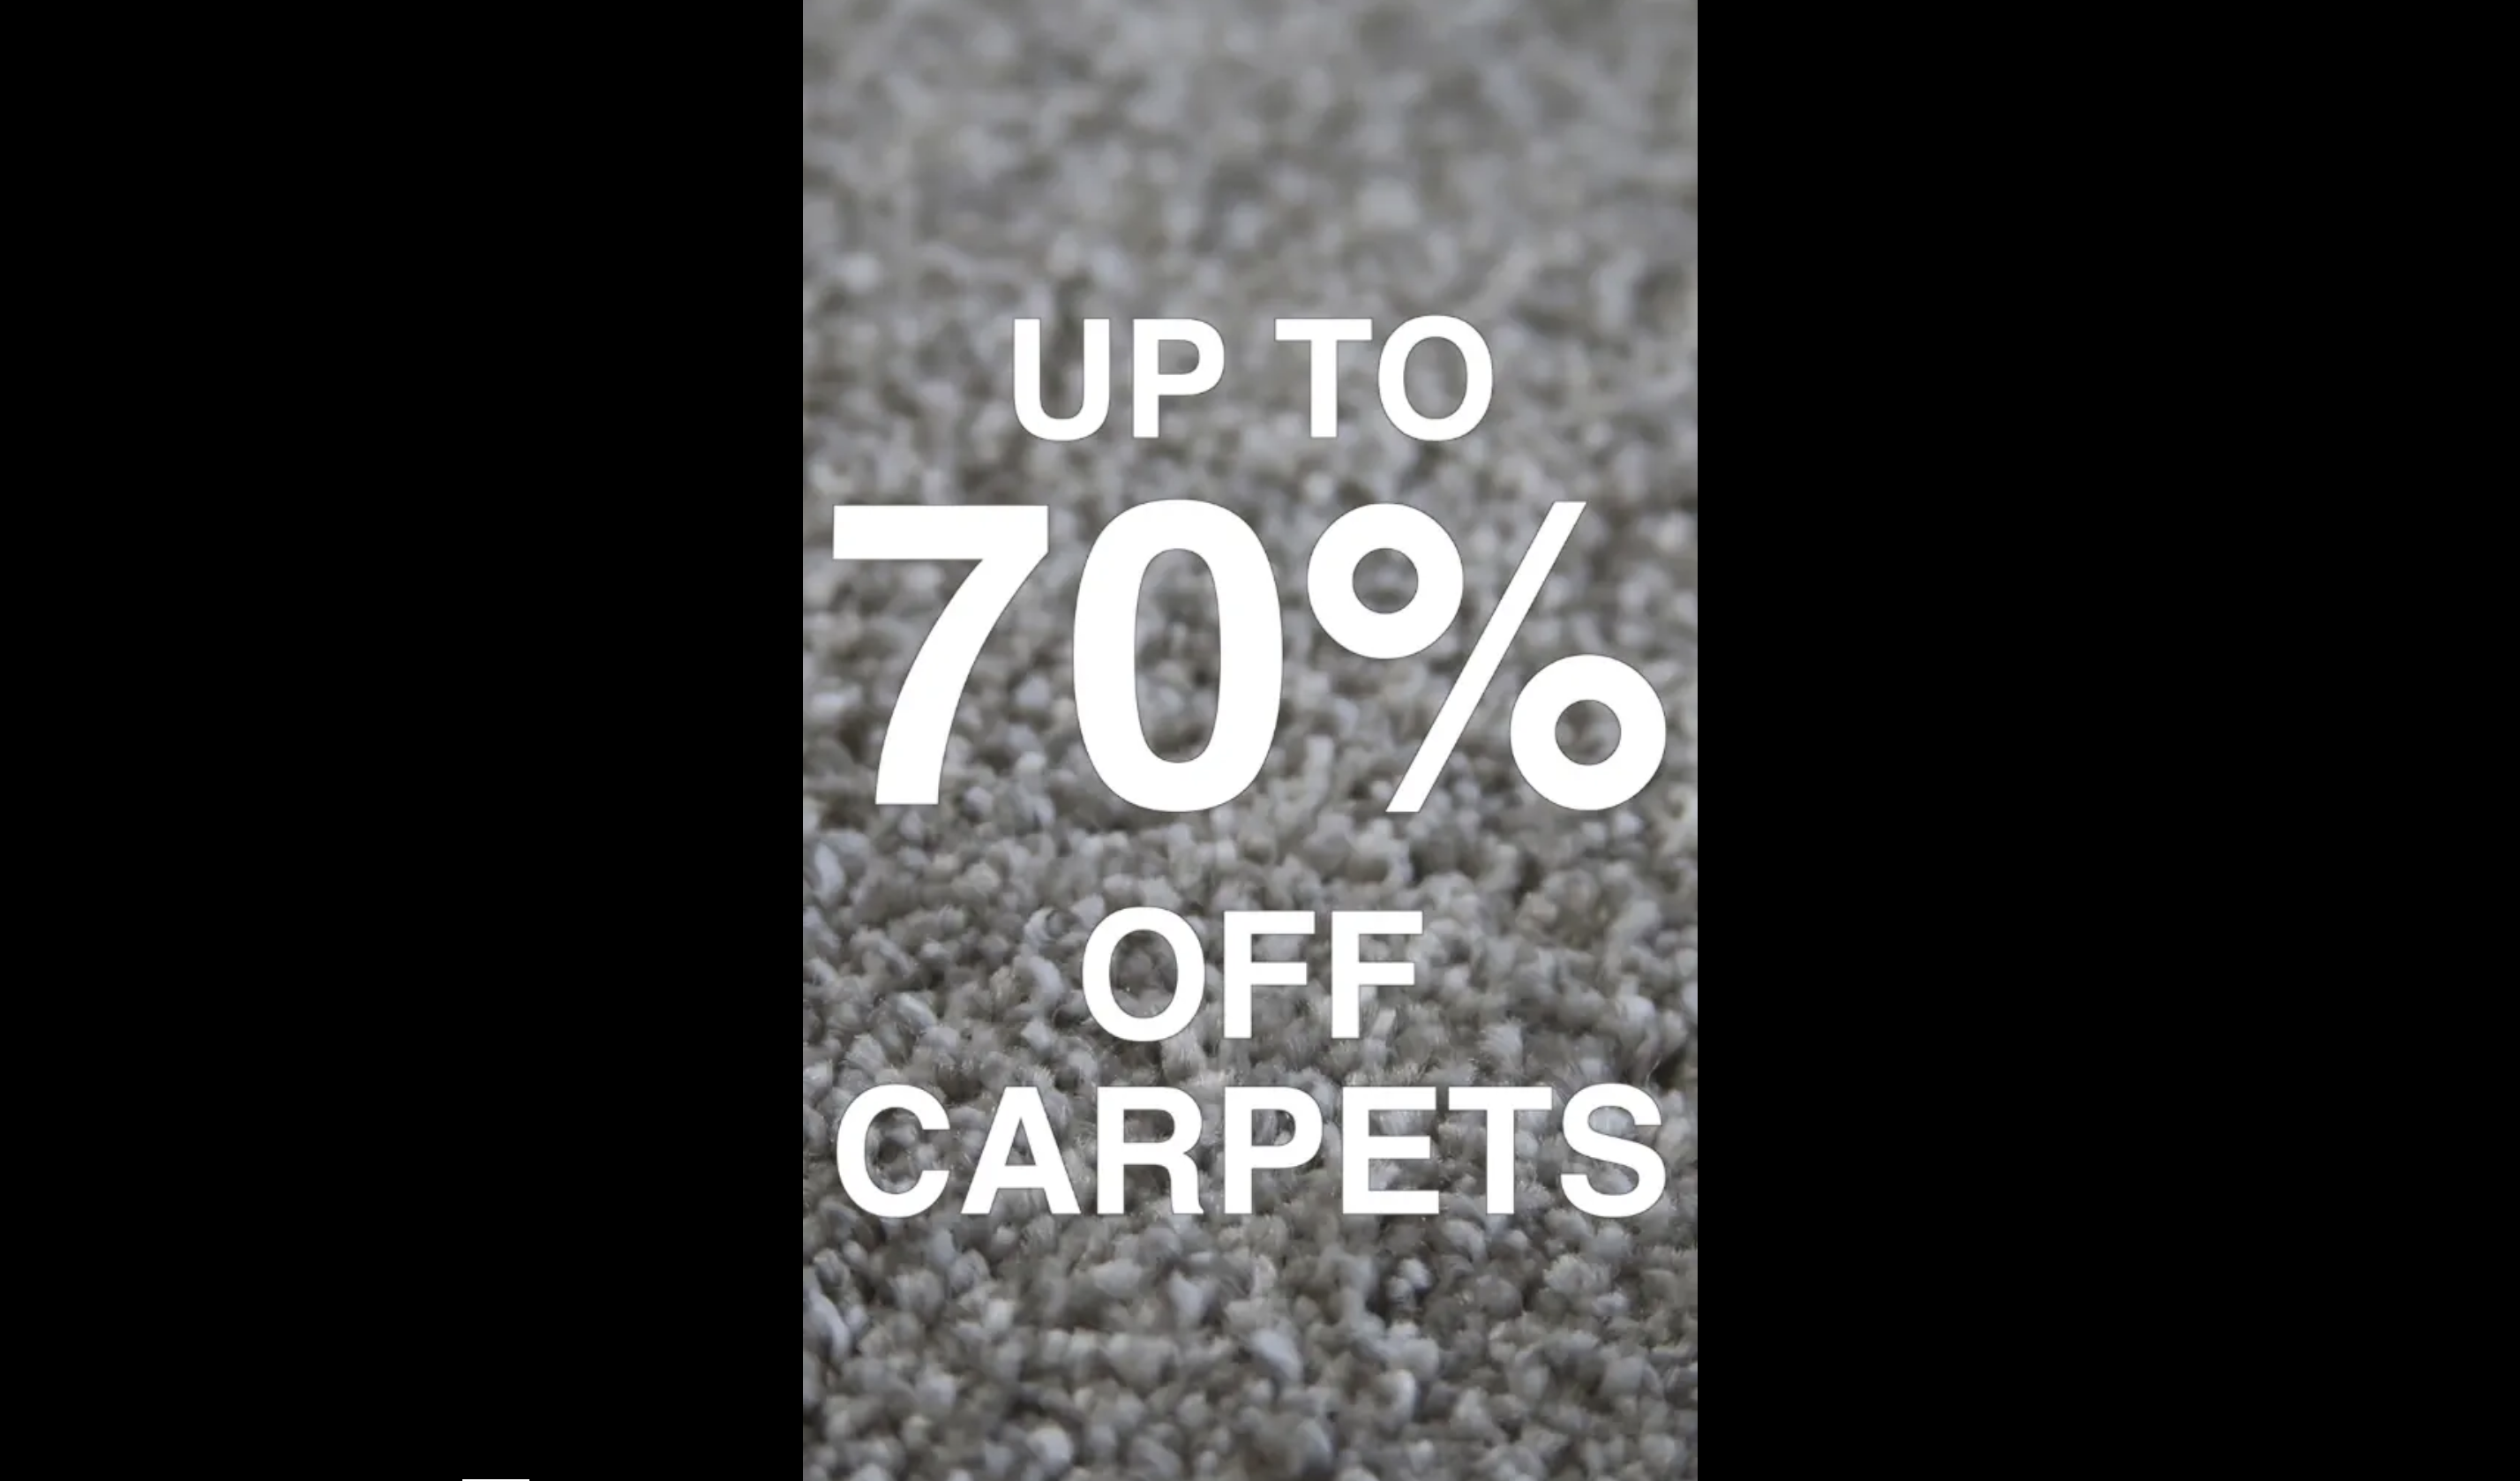 Carpet social media campaign still